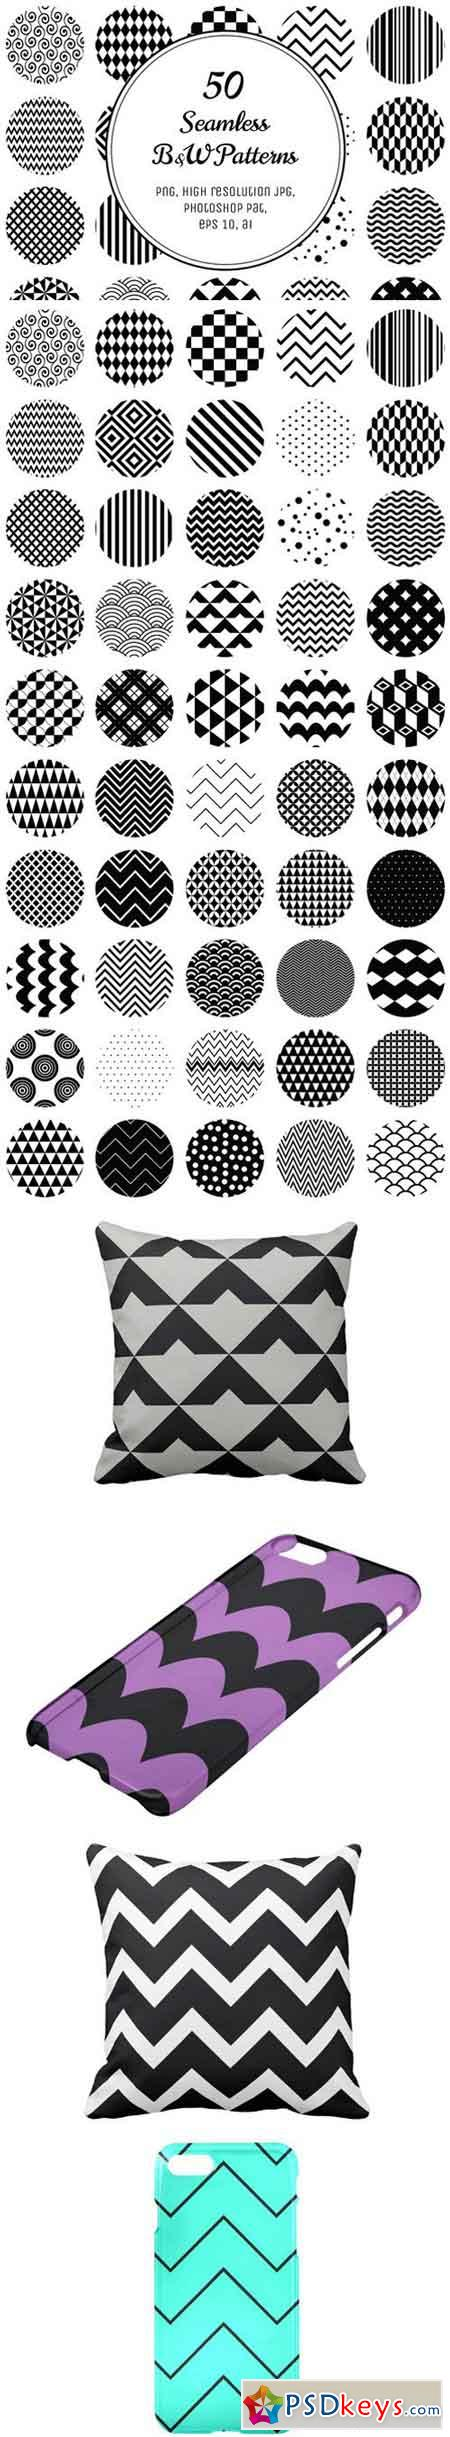 50 Geometric B&W Patterns 70325